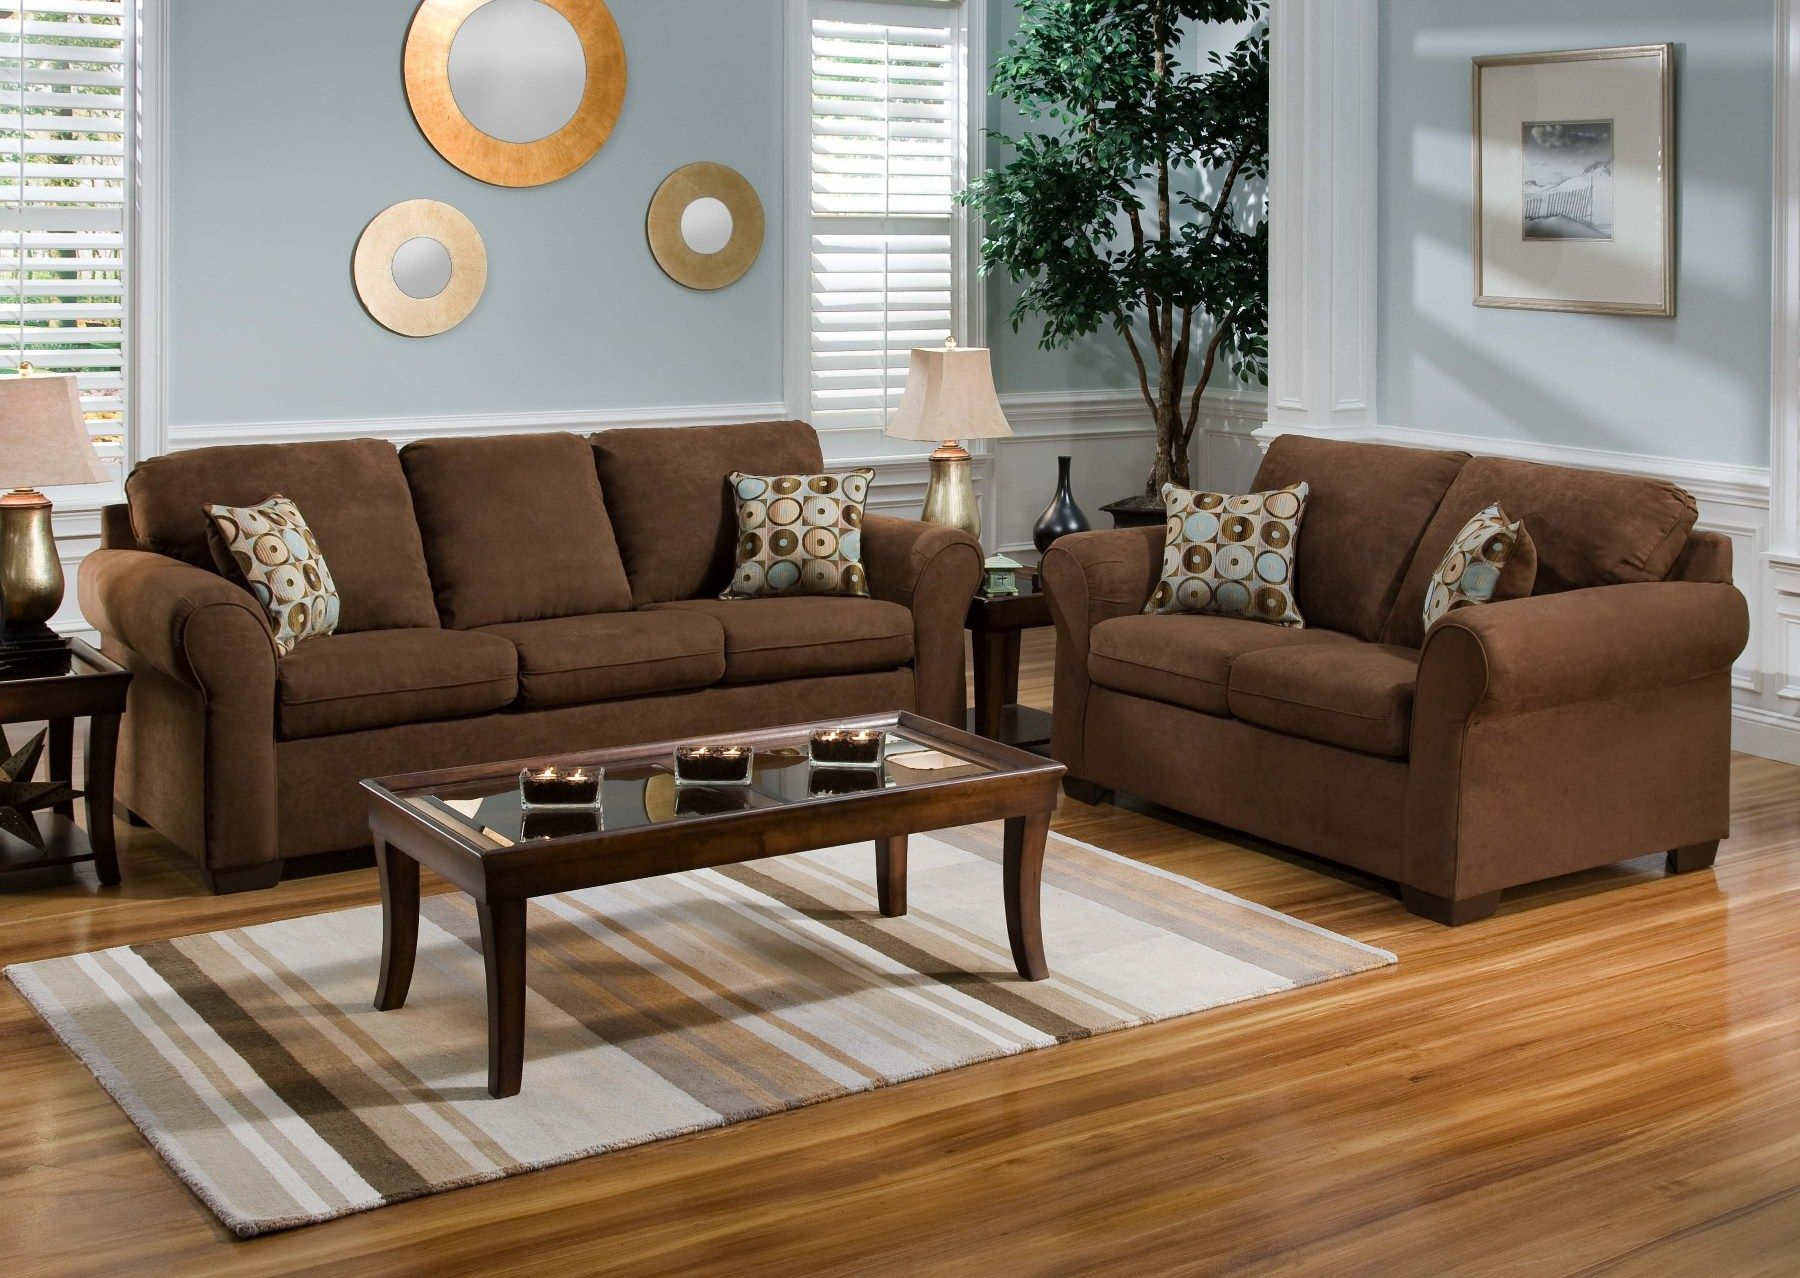 living room, warm living room color schemes with chocolate brown